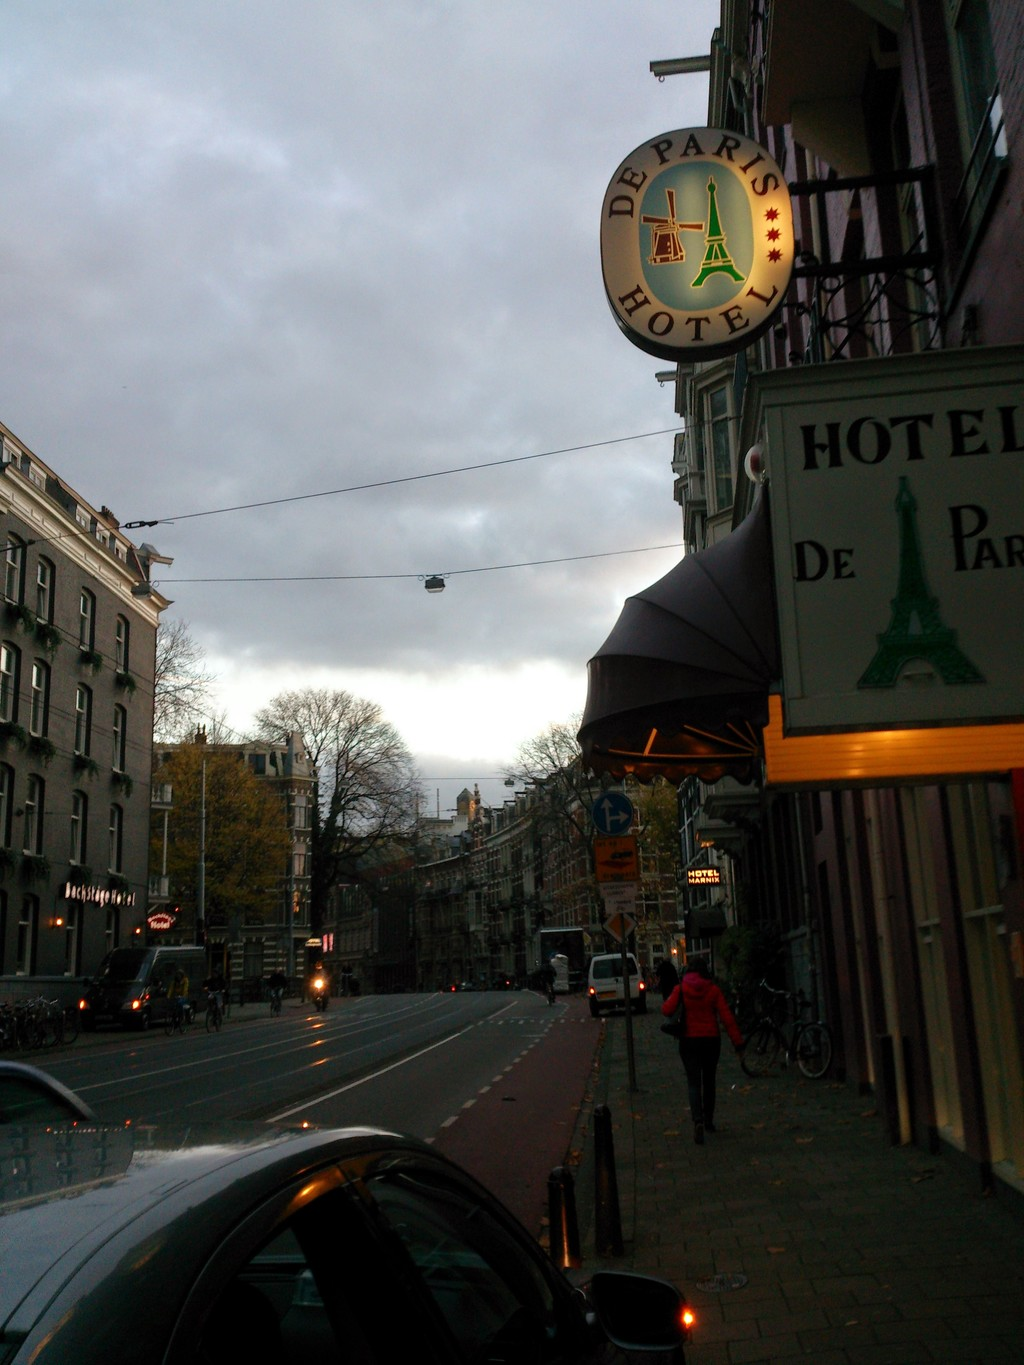 Hotel de Paris Amsterdam is a place you'll want to stay